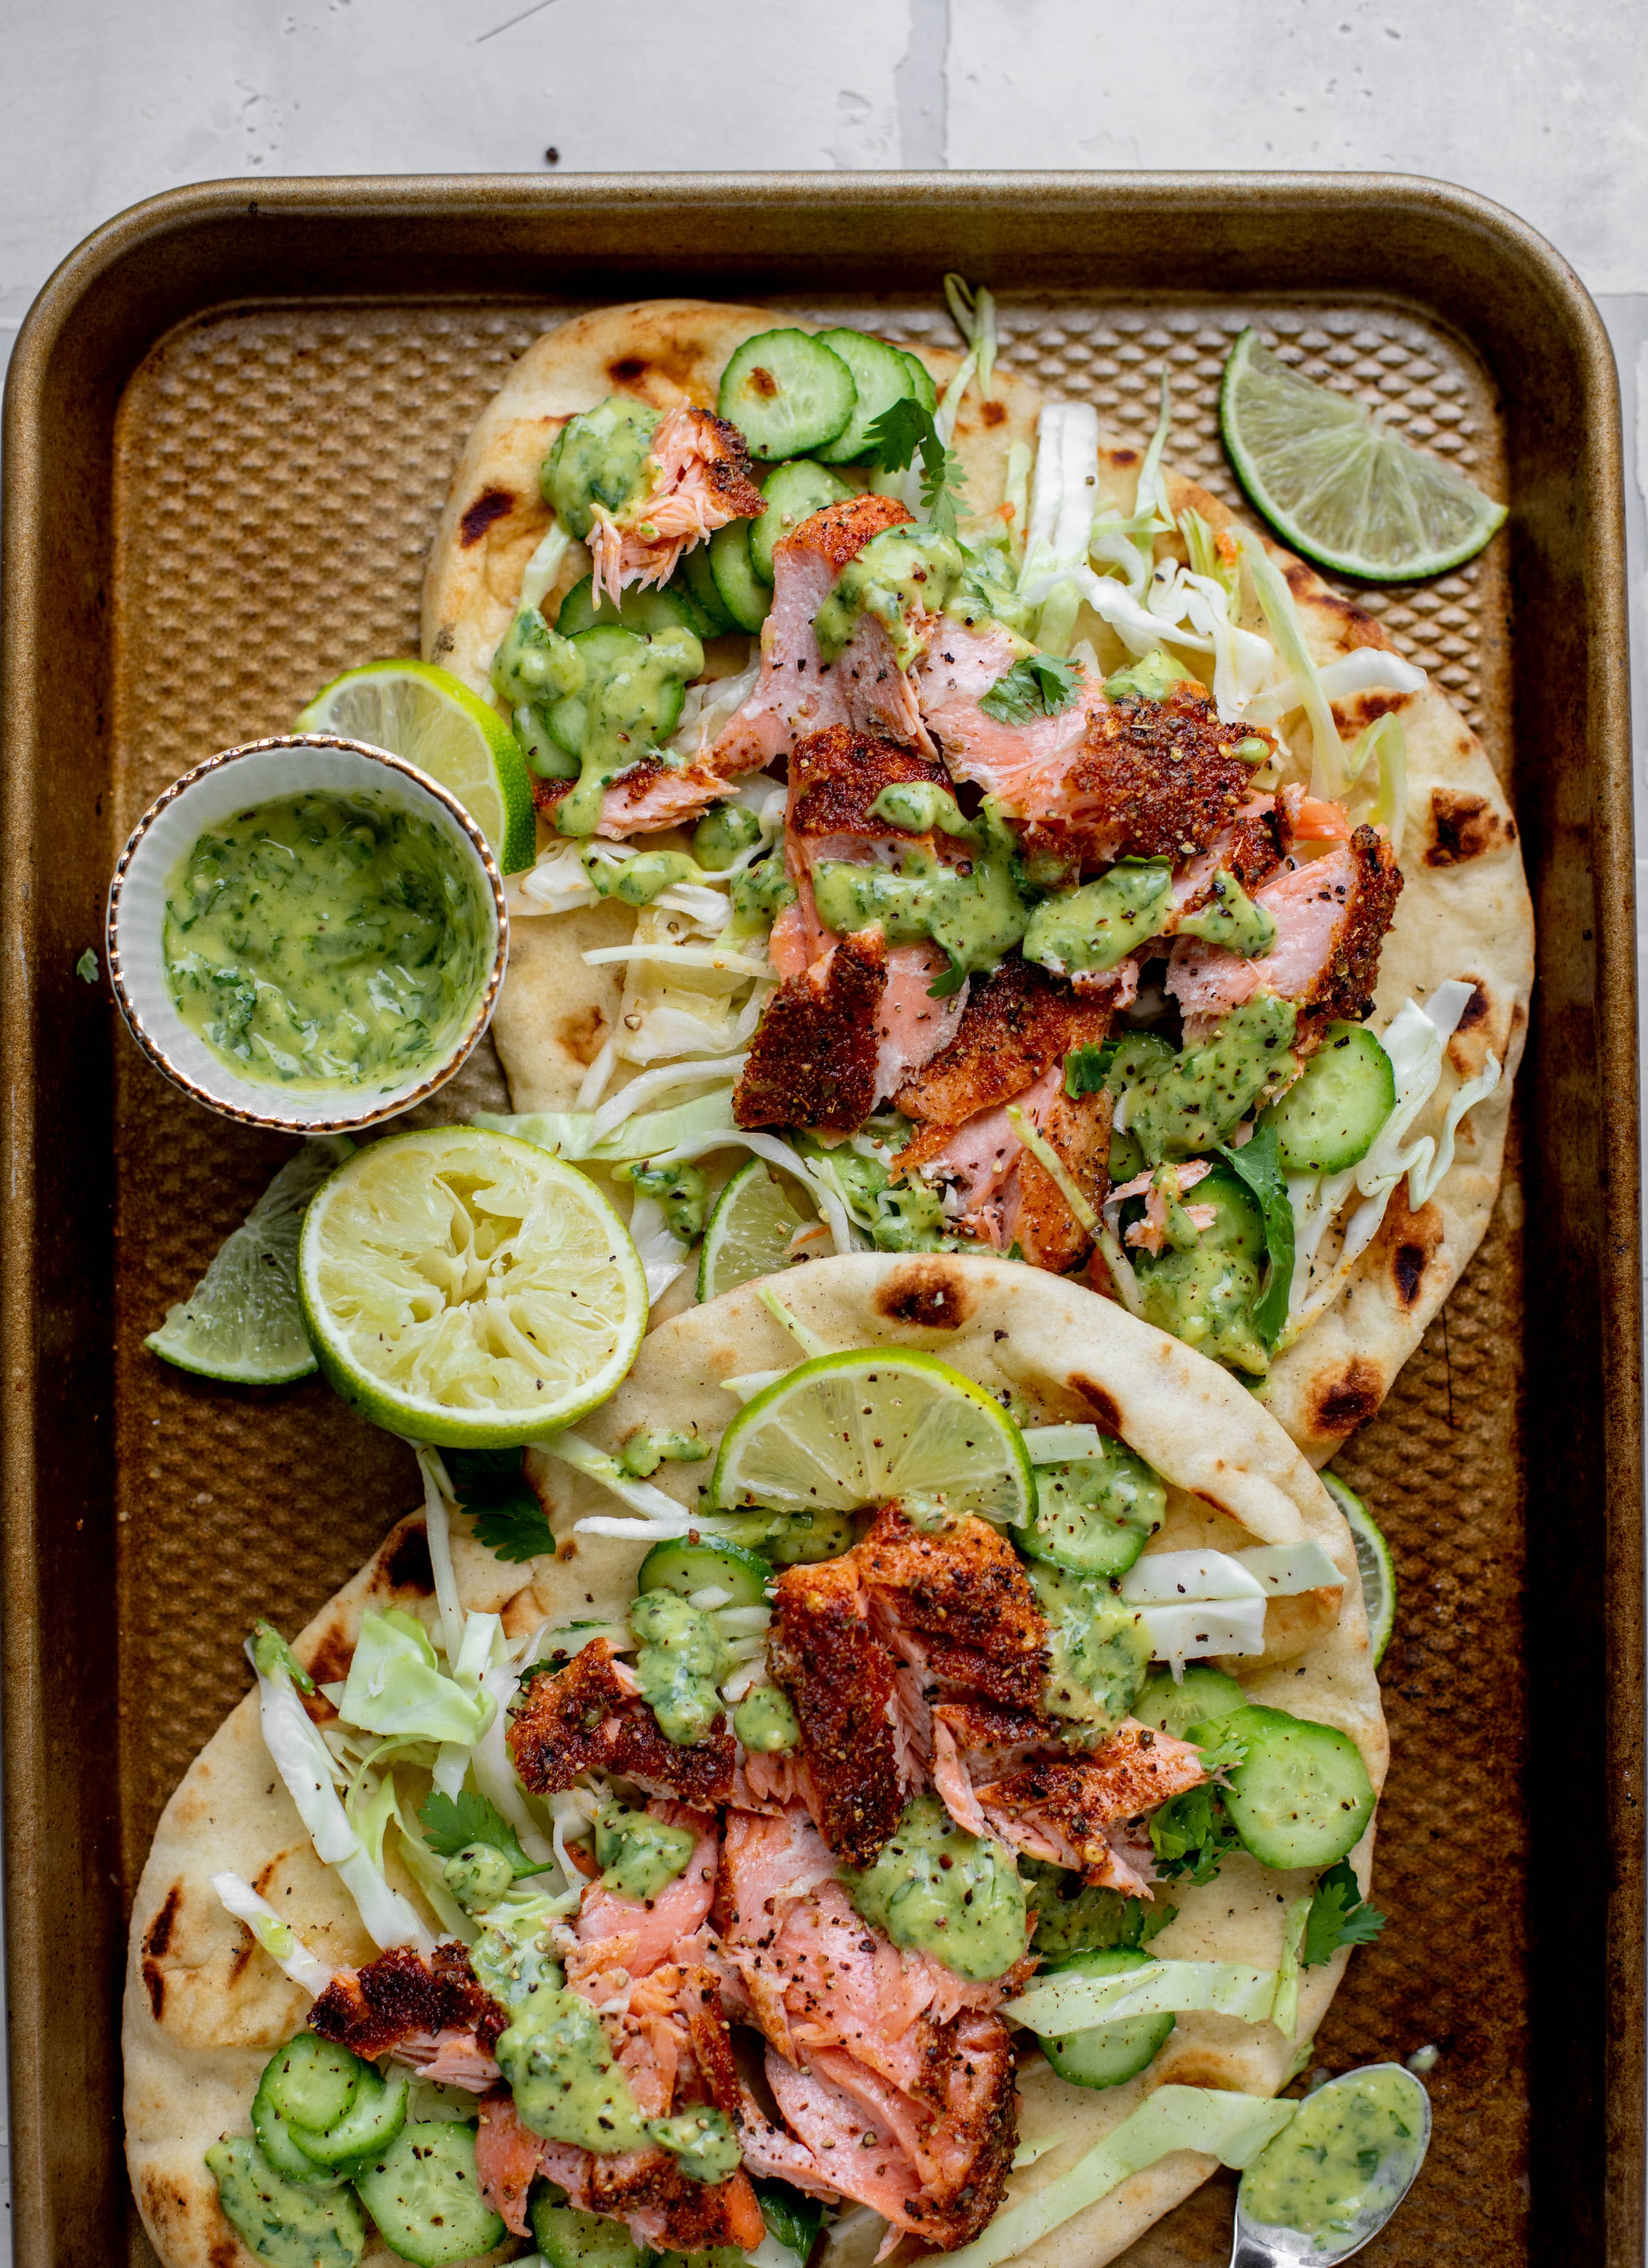 grilled salmon on naan bread with slaw and cilantro sauce